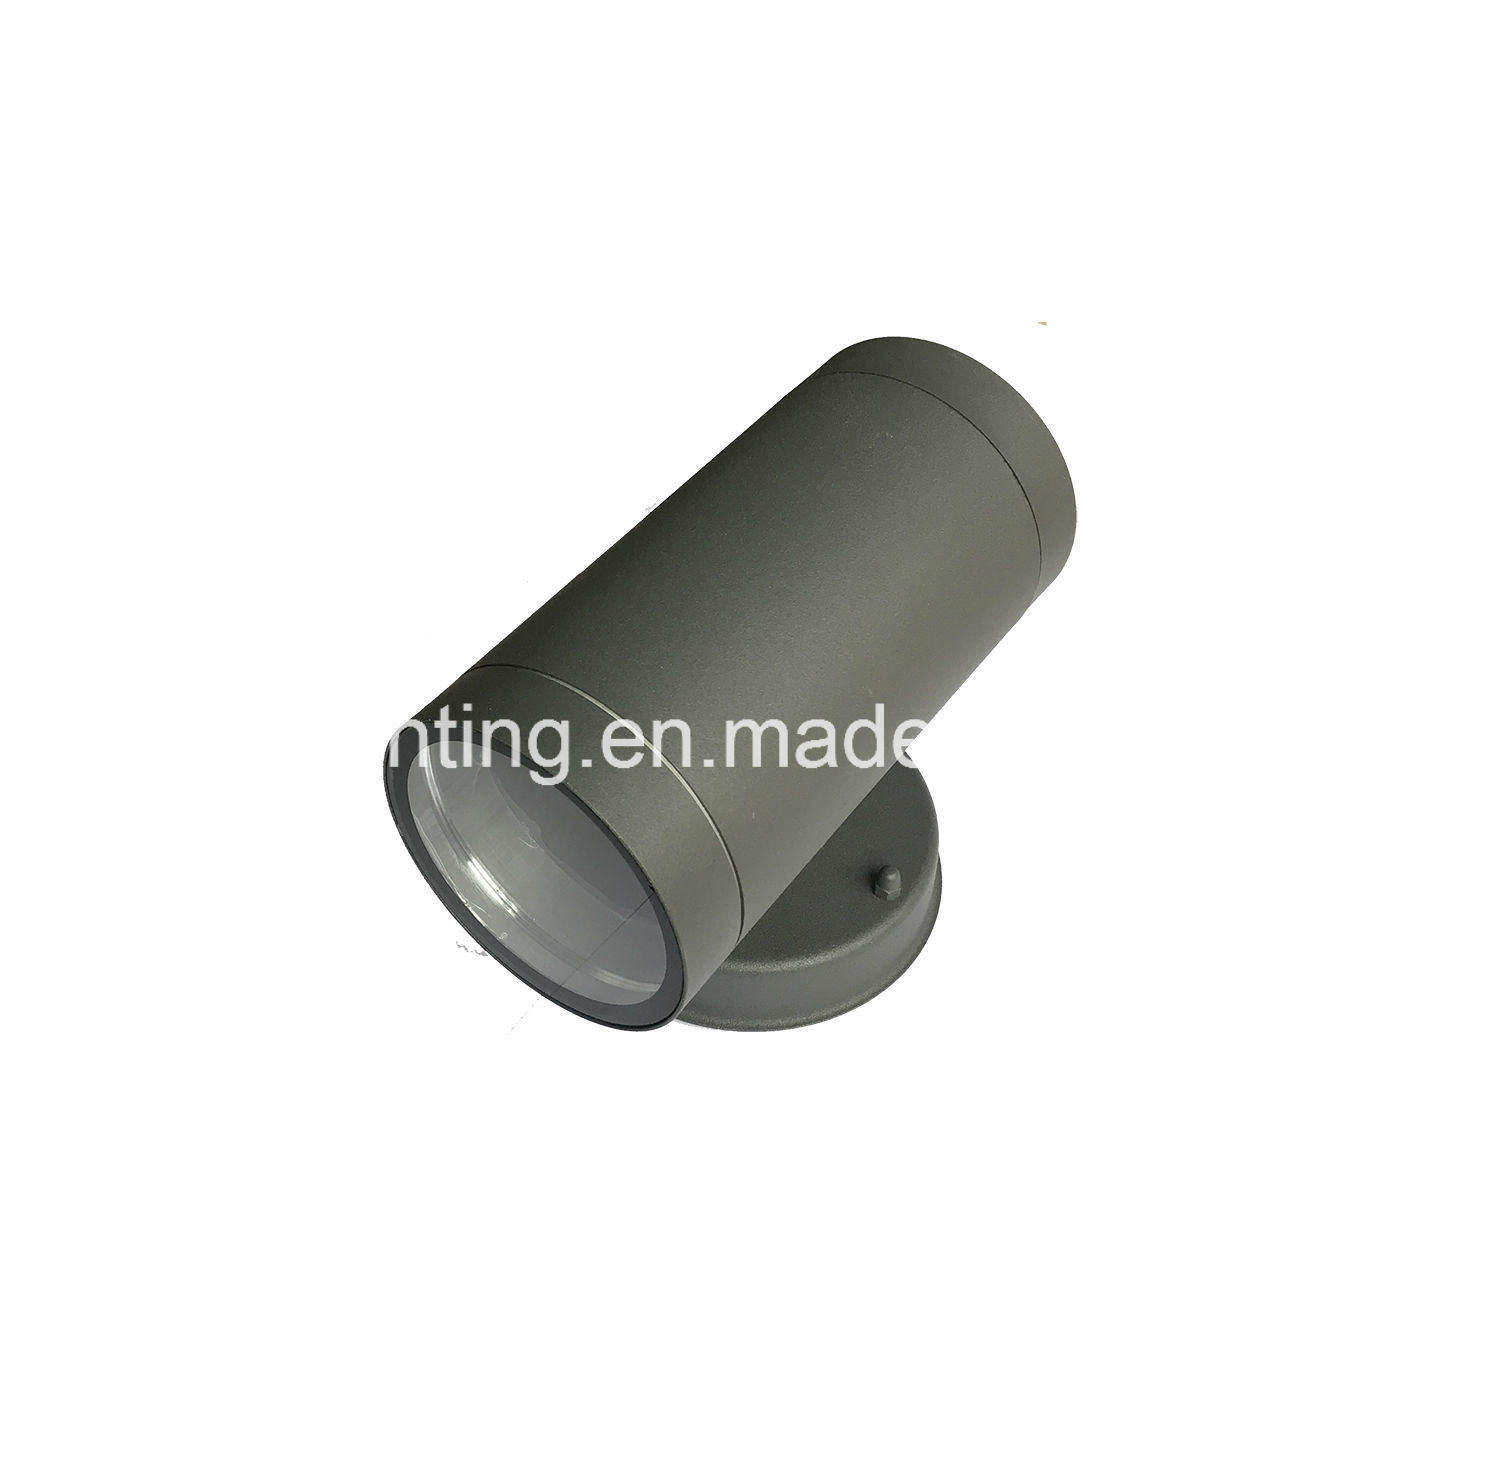 Double Light Stainless Steel Outdoor Light with Ce Certificate (LH141A)